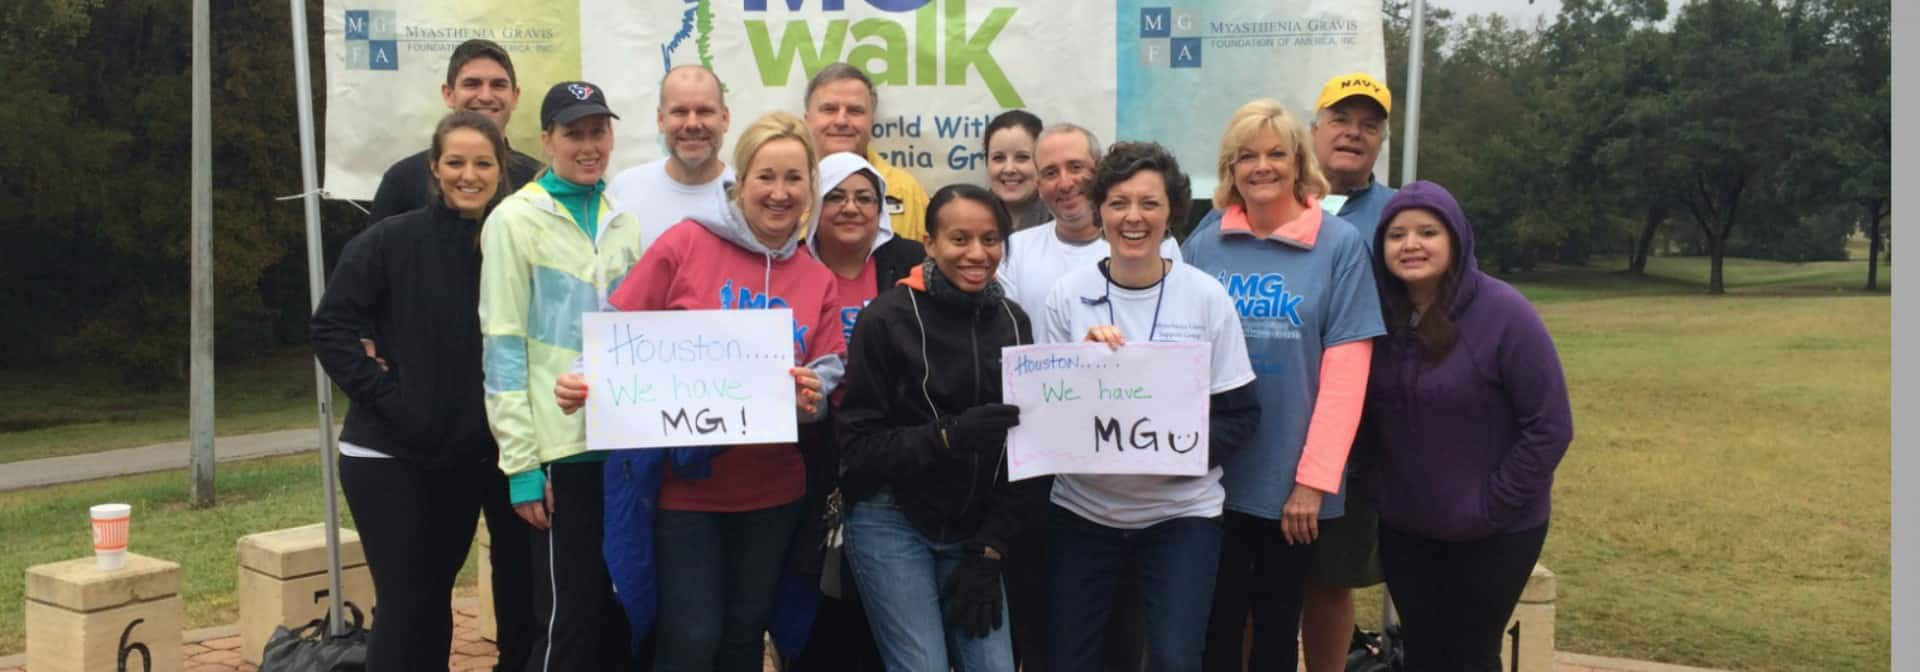 South Texas MG Walk 2015